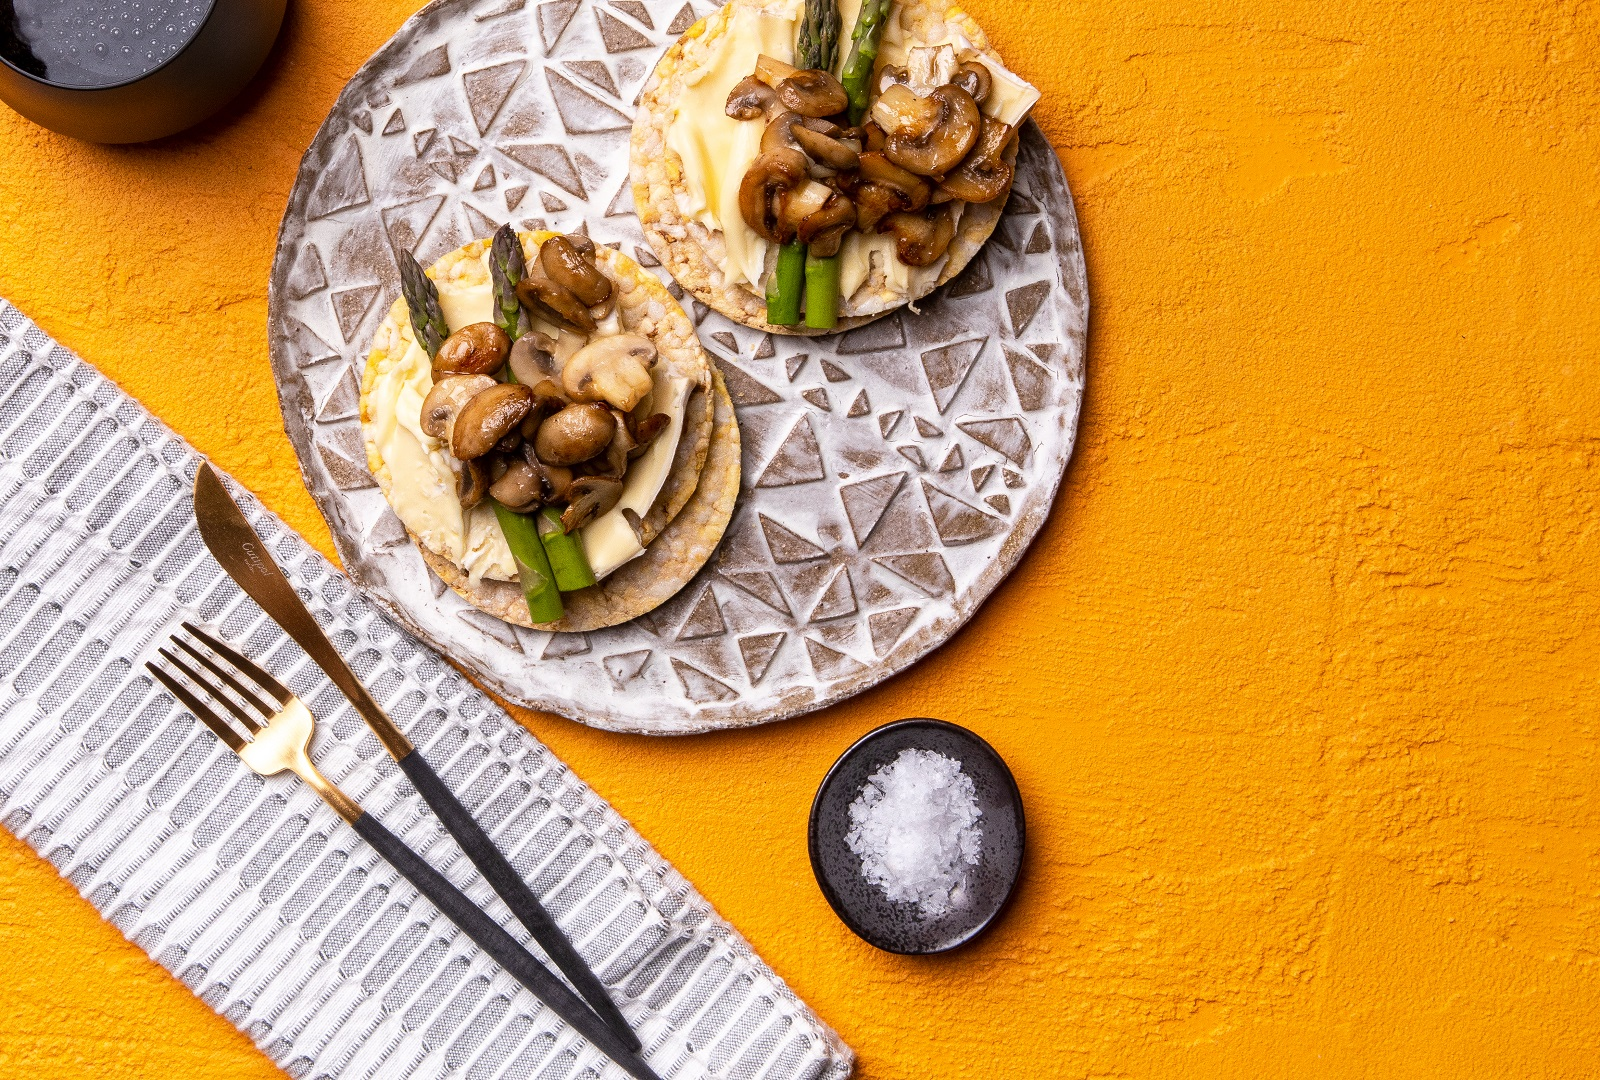 Brie, Asparagus & Grilled Mushrooms on Corn Thins skices